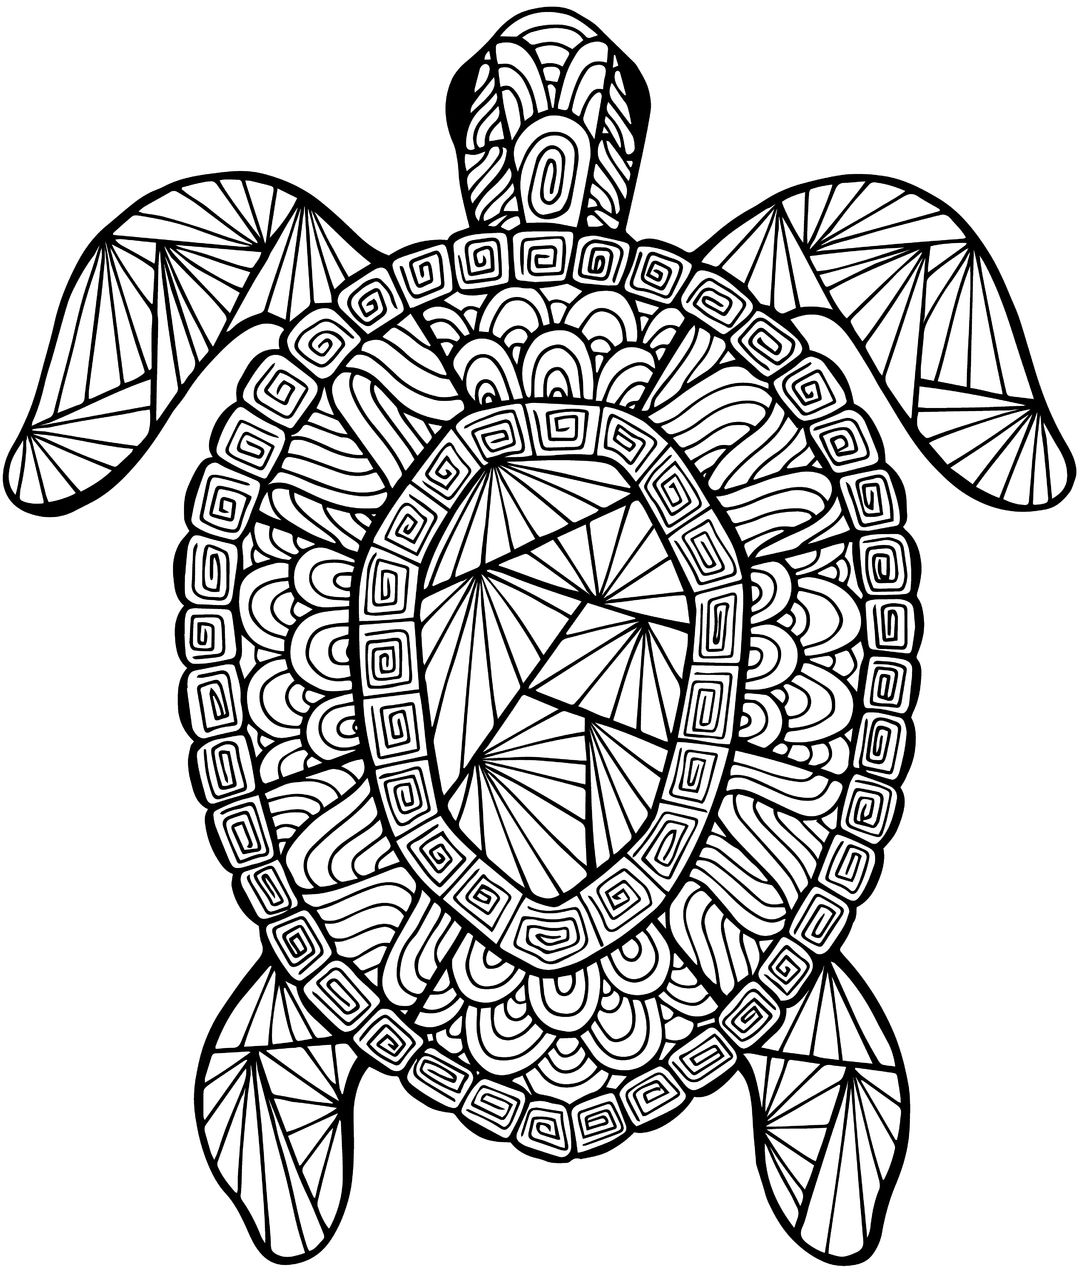 advanced free coloring pages - photo#27